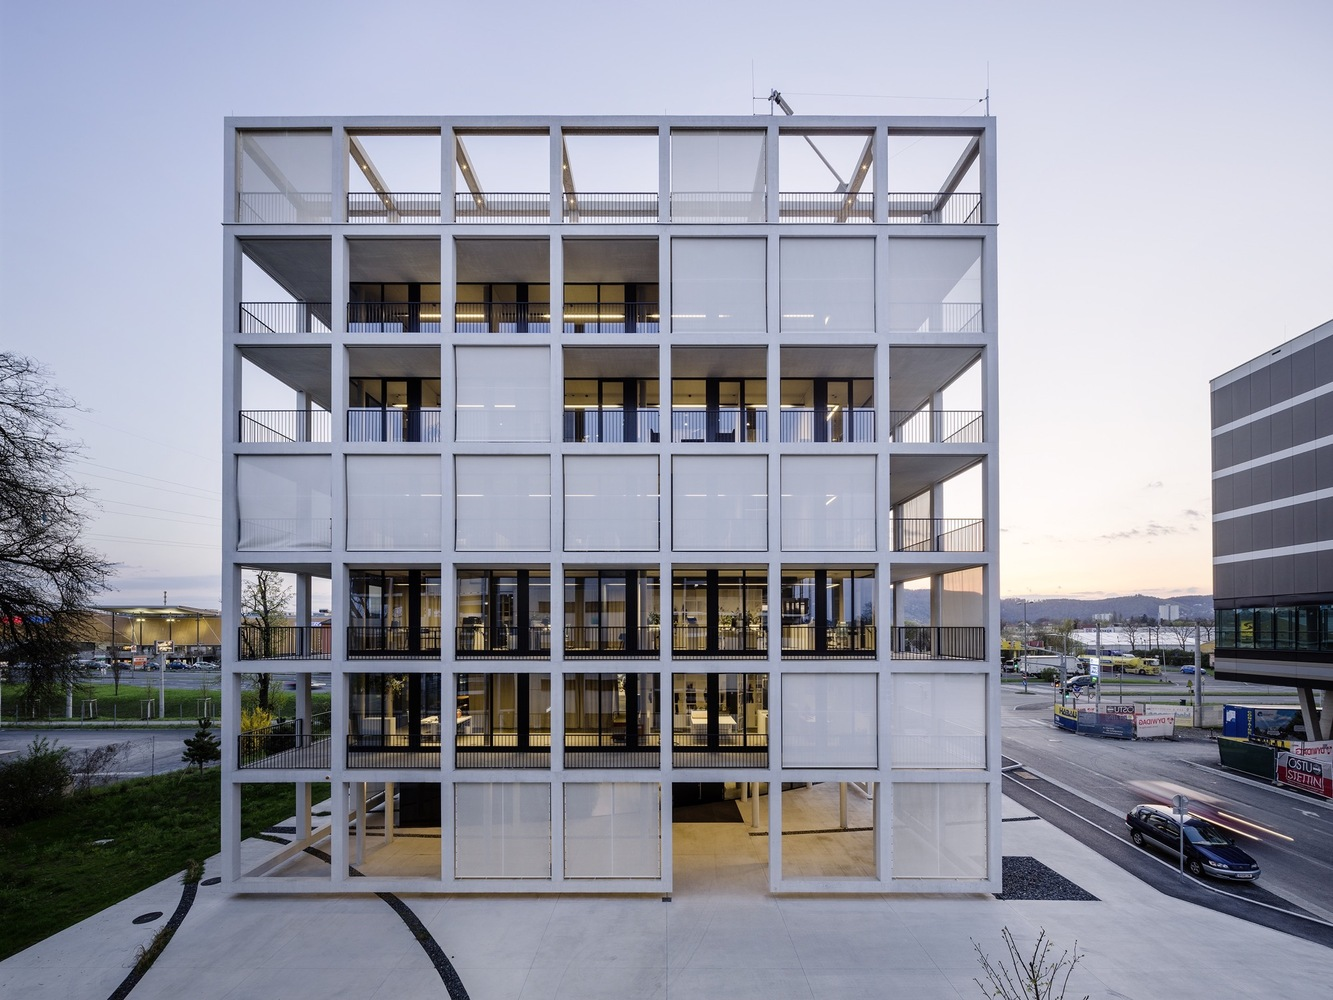 Perforated metal ideas: top projects using metal